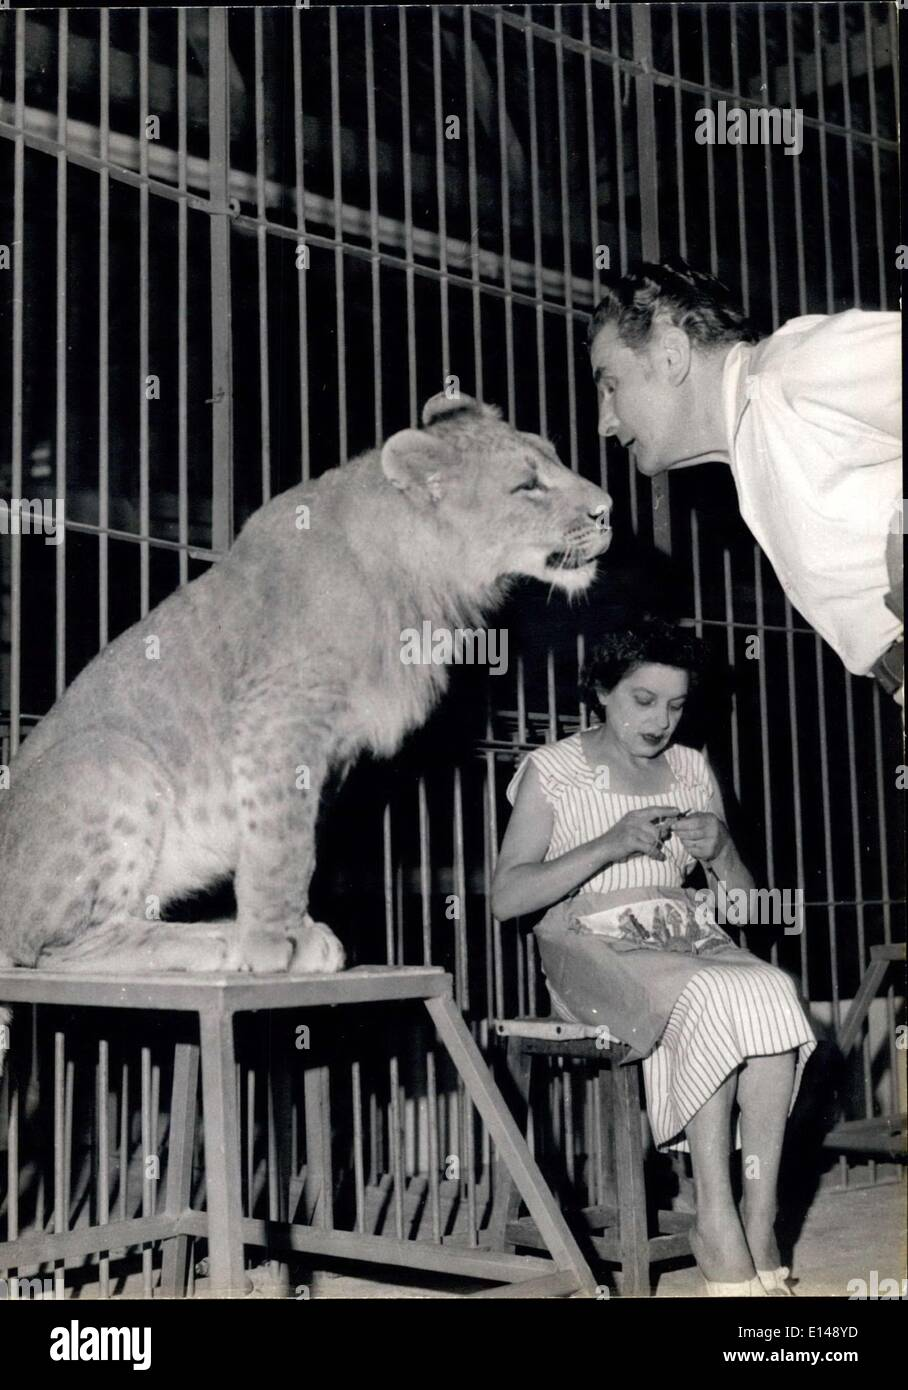 Apr. 17, 2012 - Congolese Spotted Lion being trained for a circus act. - Stock Image